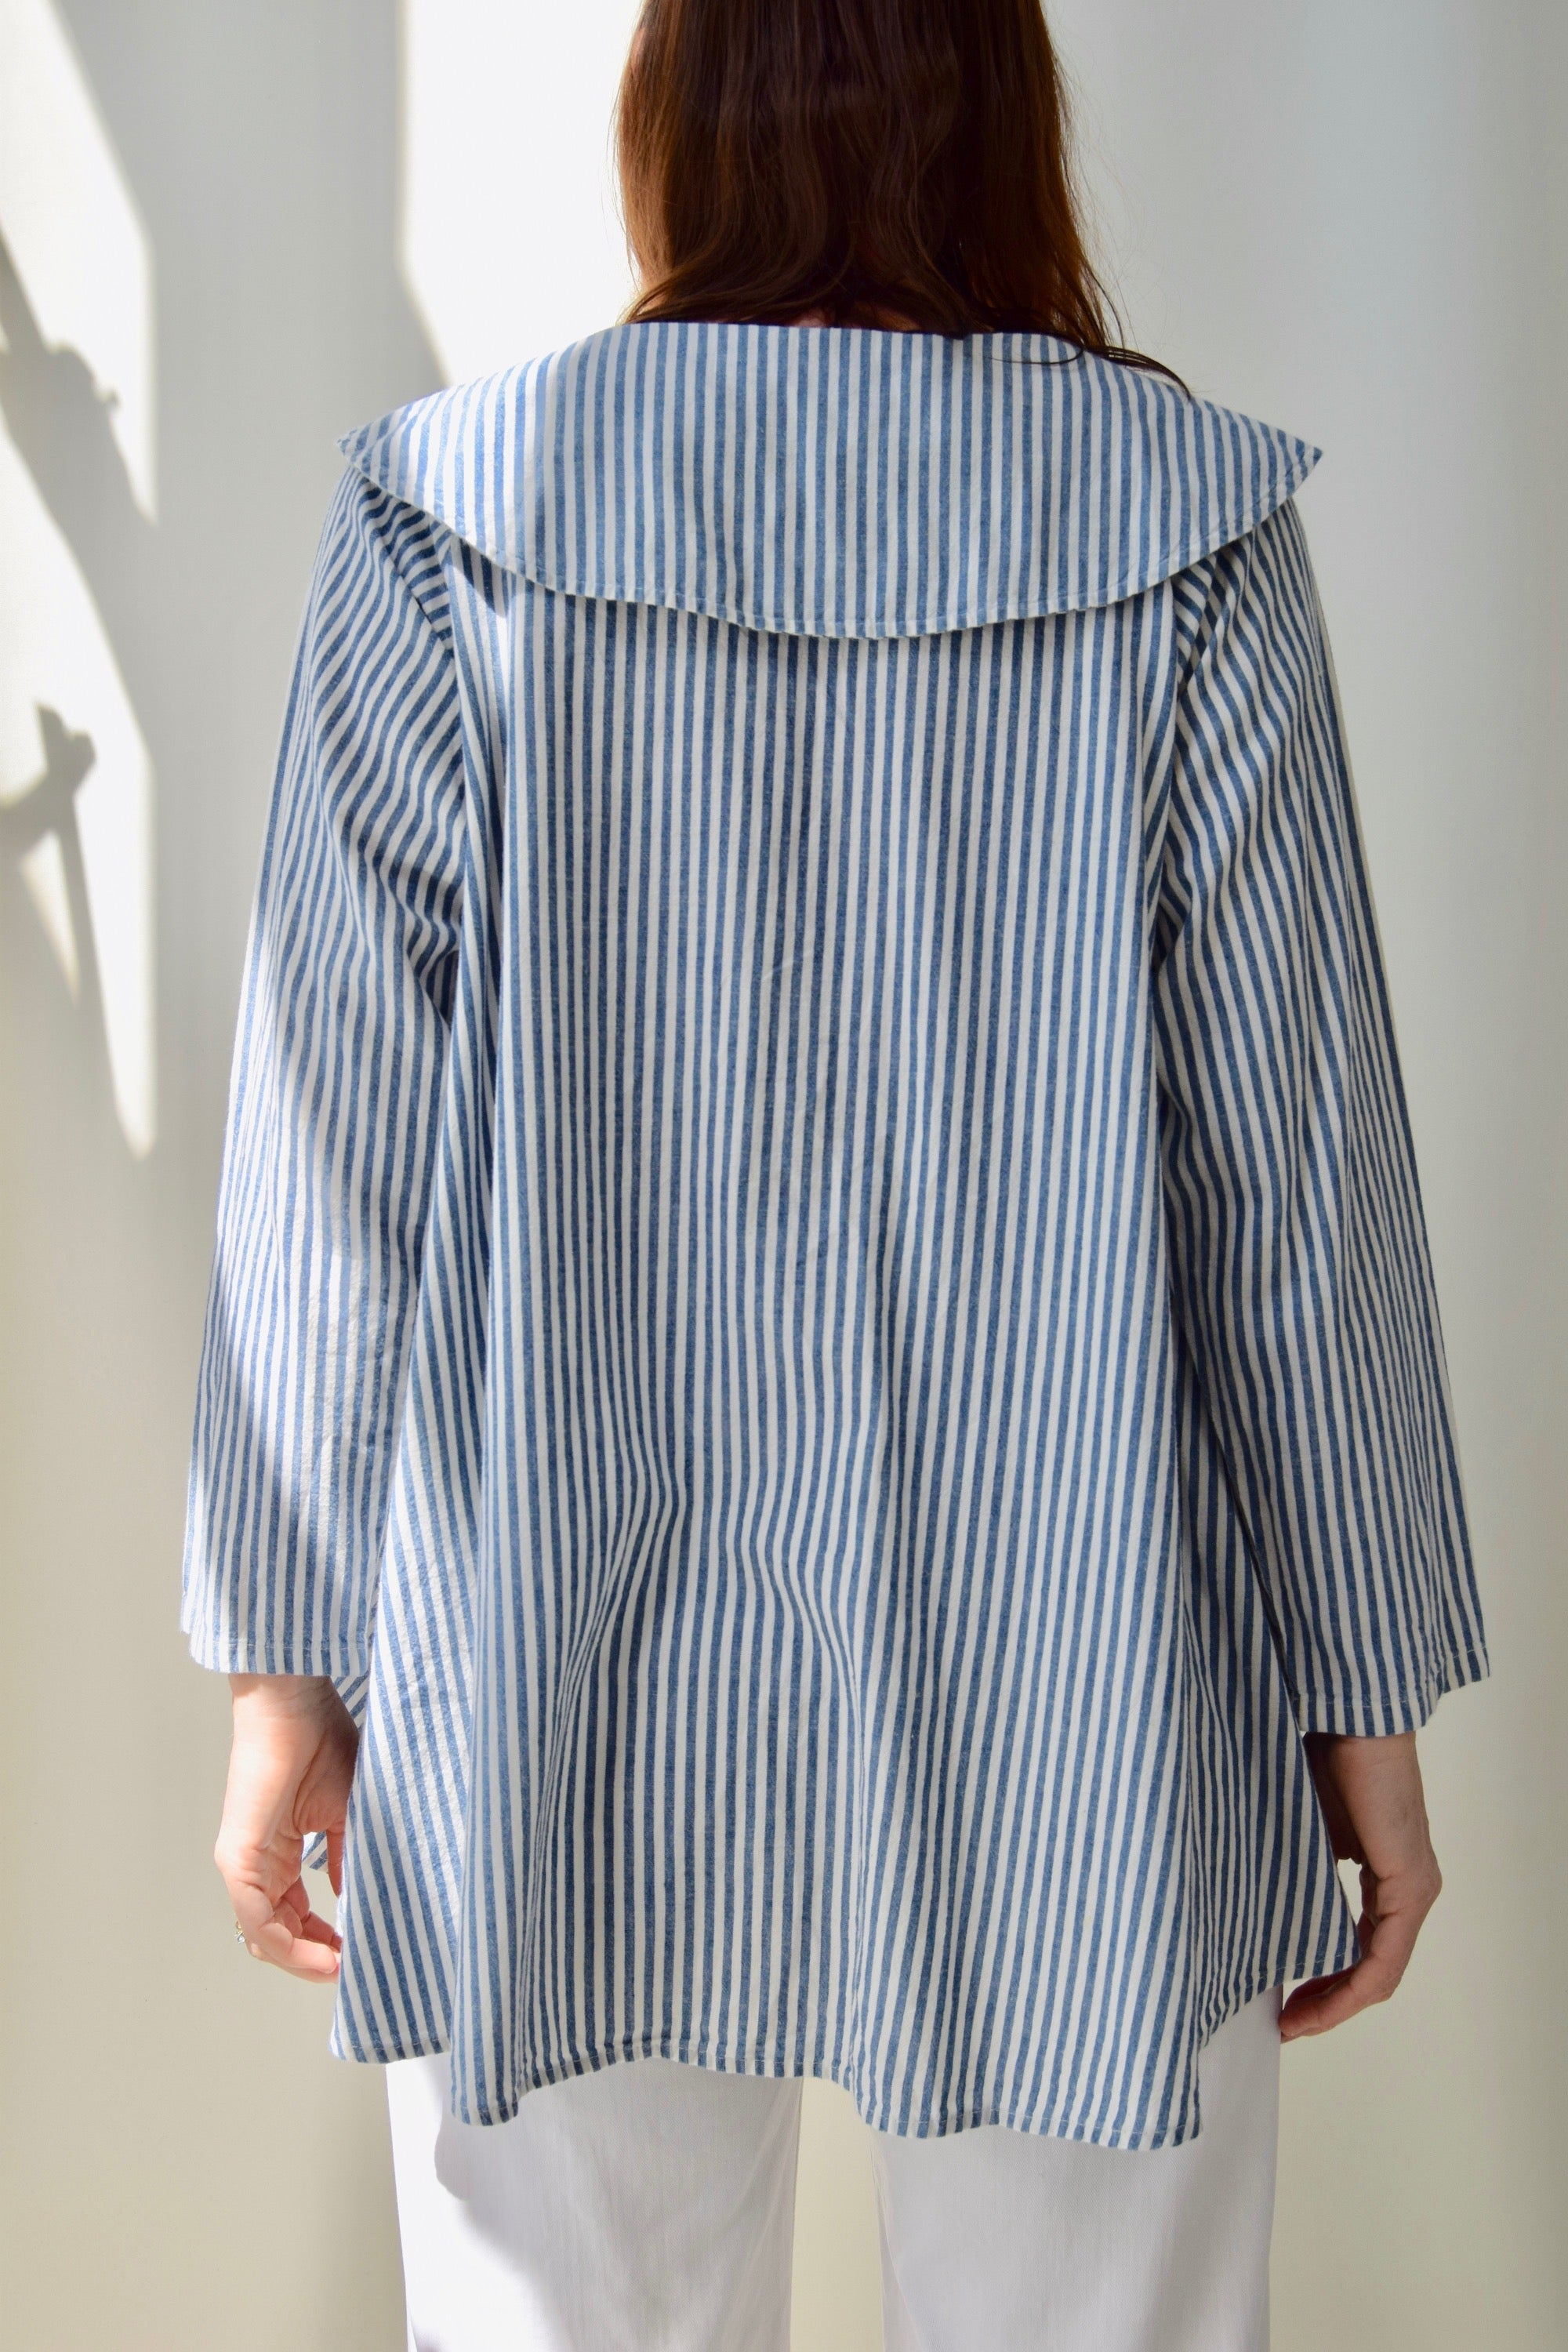 Hickory Stripe Top